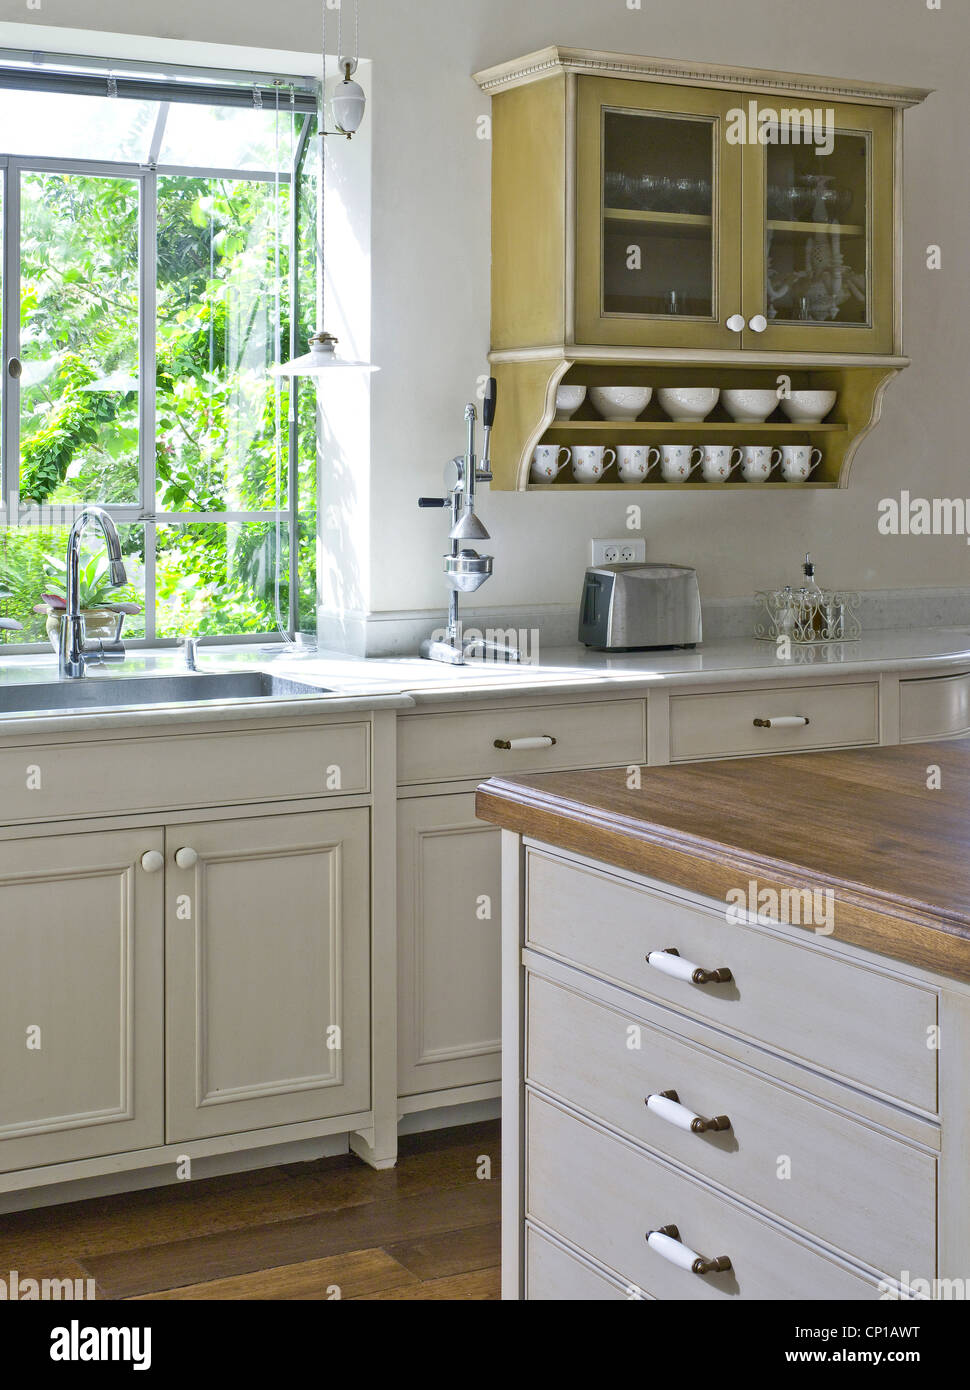 Wall Mounted Kitchen Cabinets Wall mounted kitchen cabinext to sink at window. Ramhash